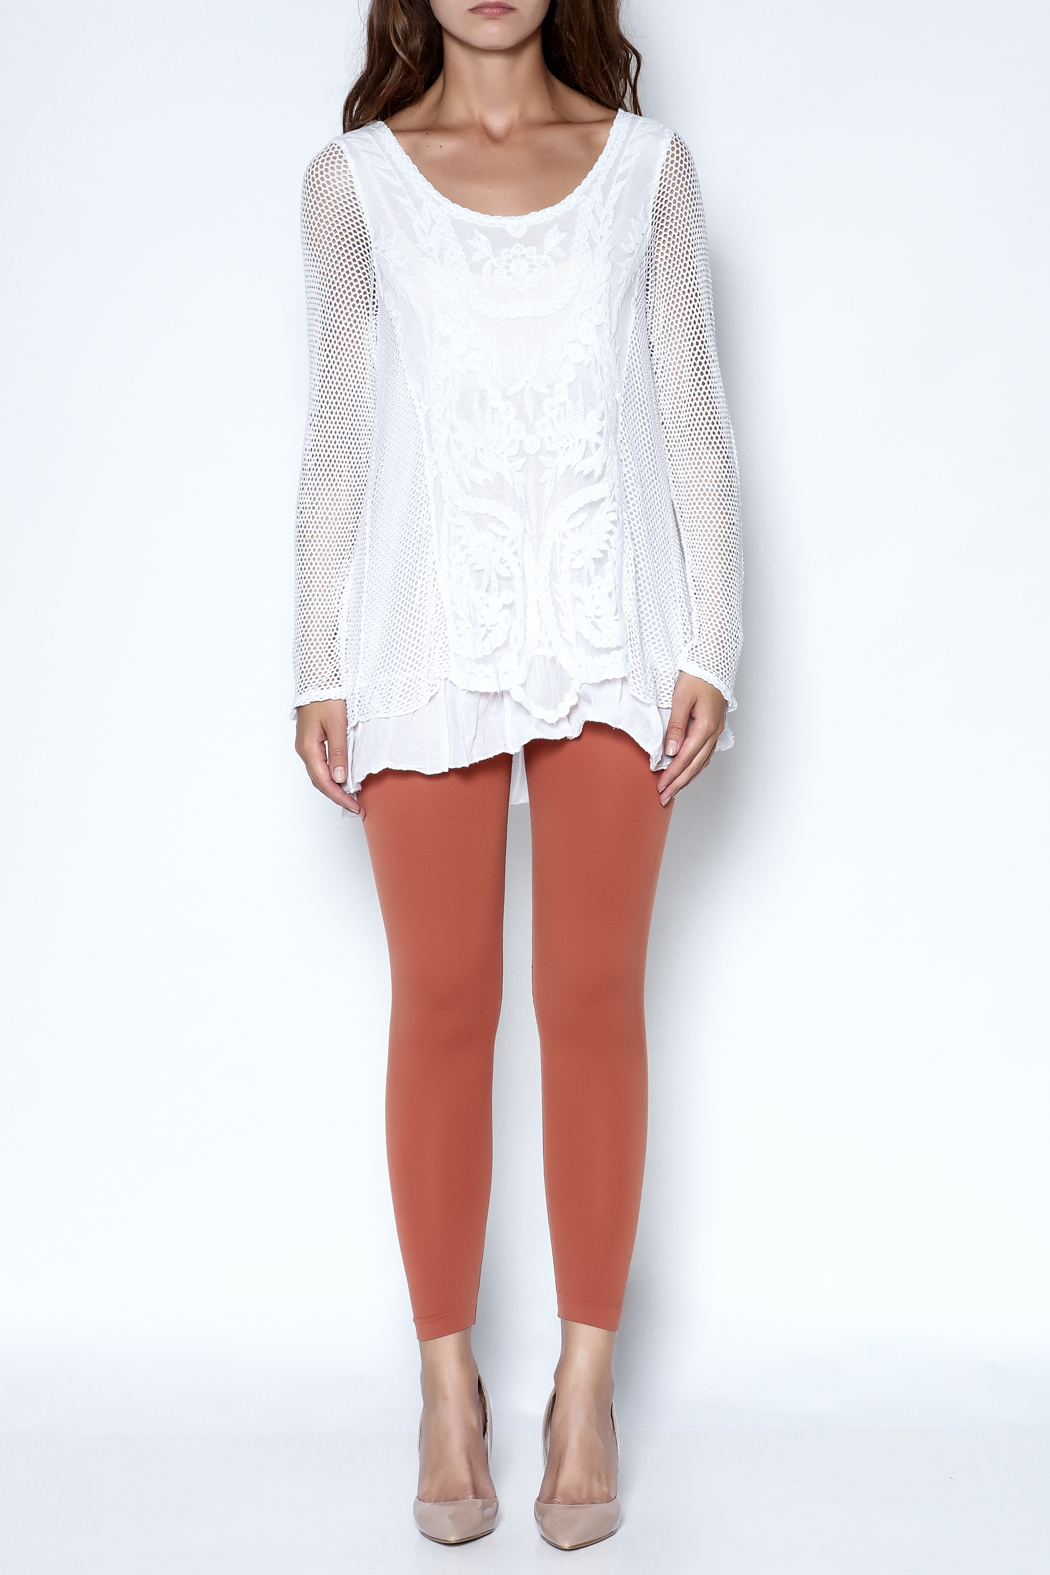 Catherine Lillywhite Knit Lace Top - Front Full Image